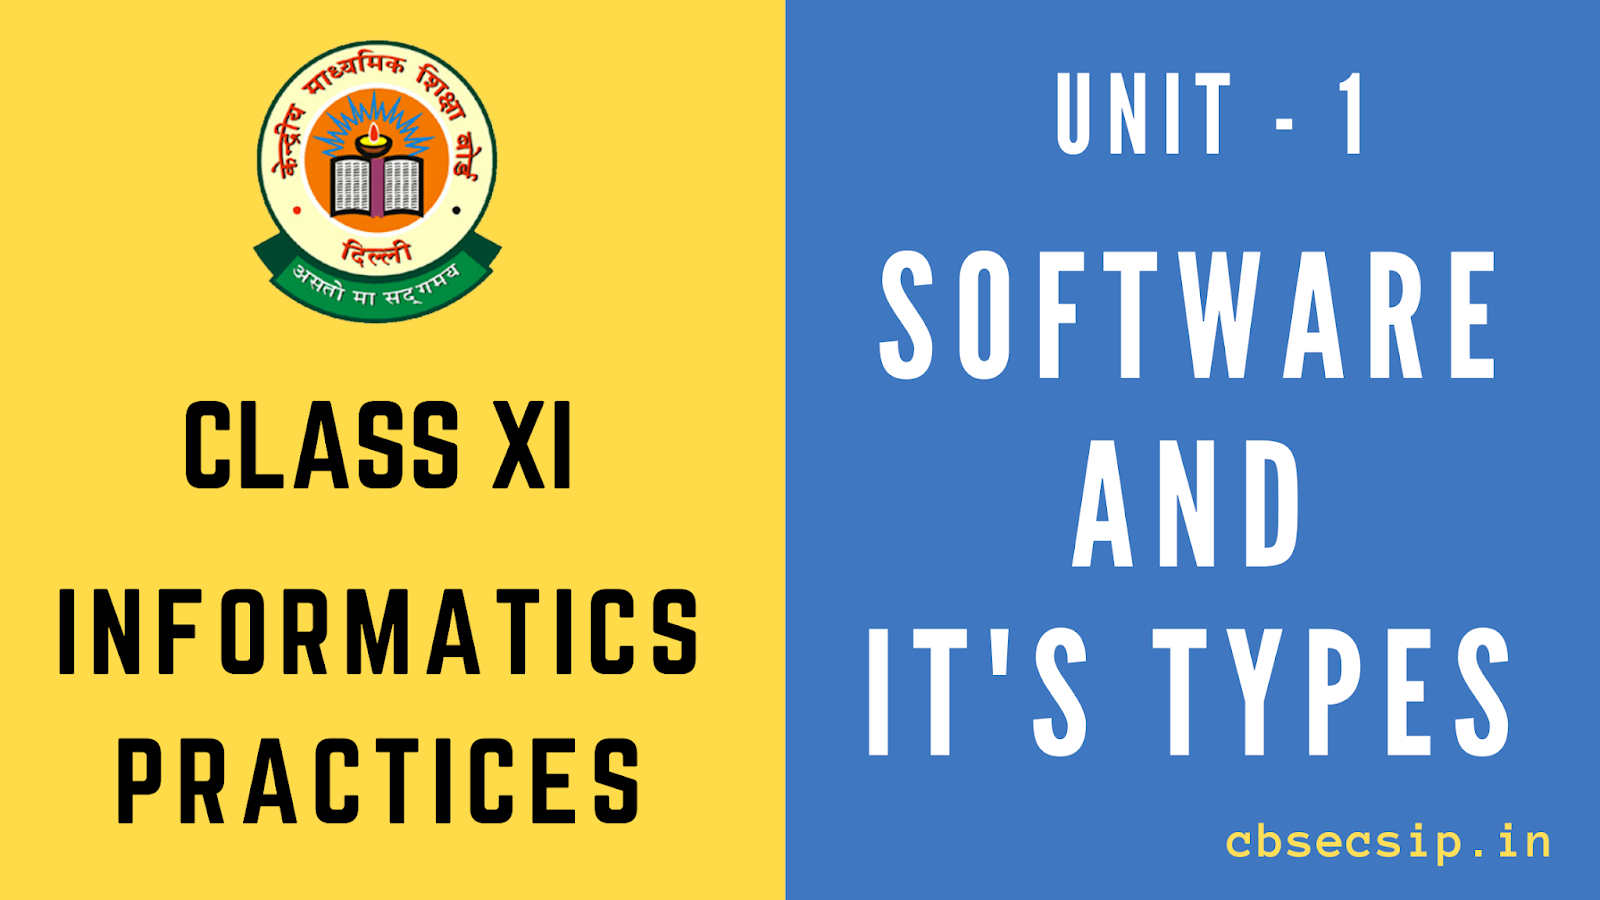 class 11 informatics practices Software and its type